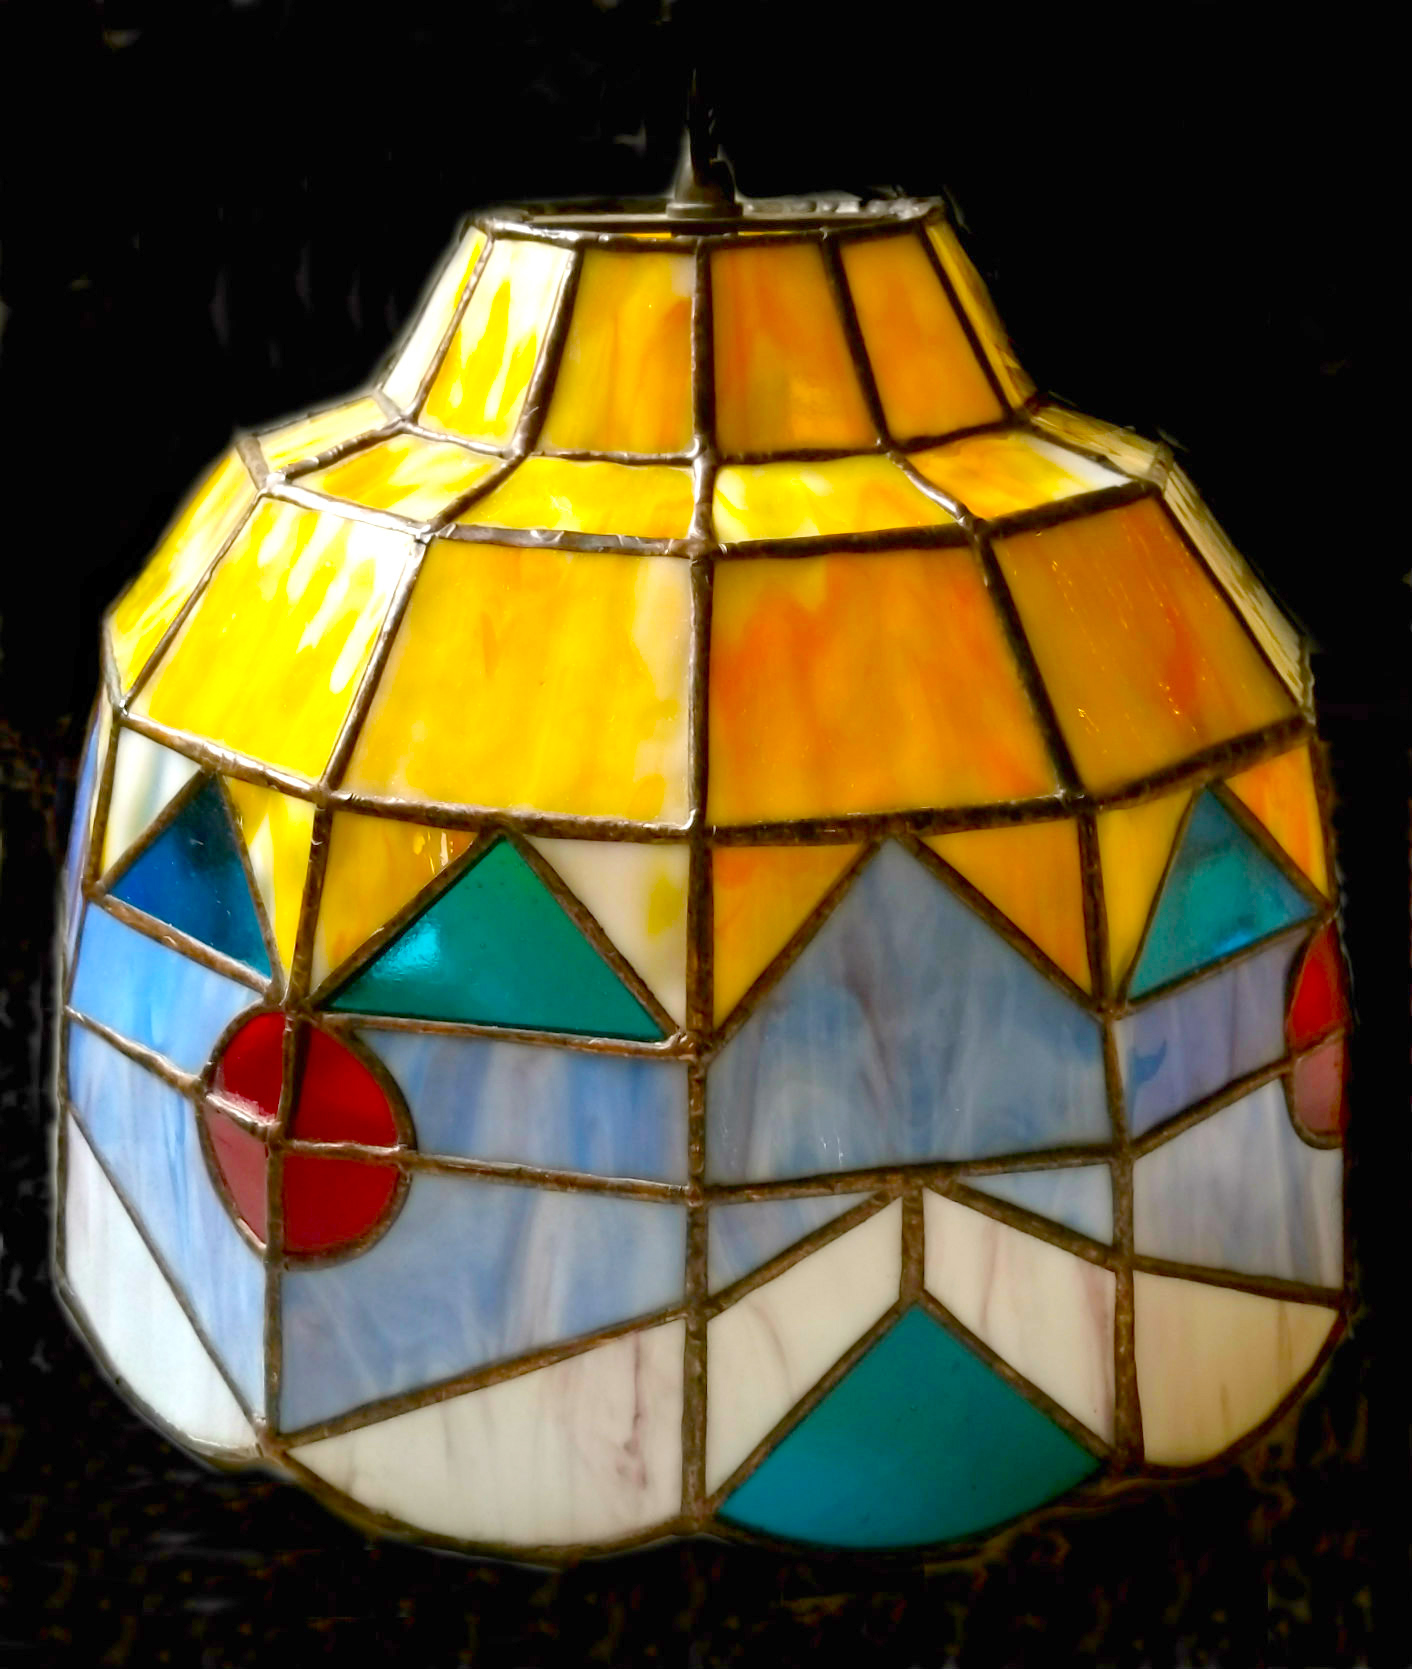 UNTITLED, 24X24, mixed media lamp by Dennis Lippert -